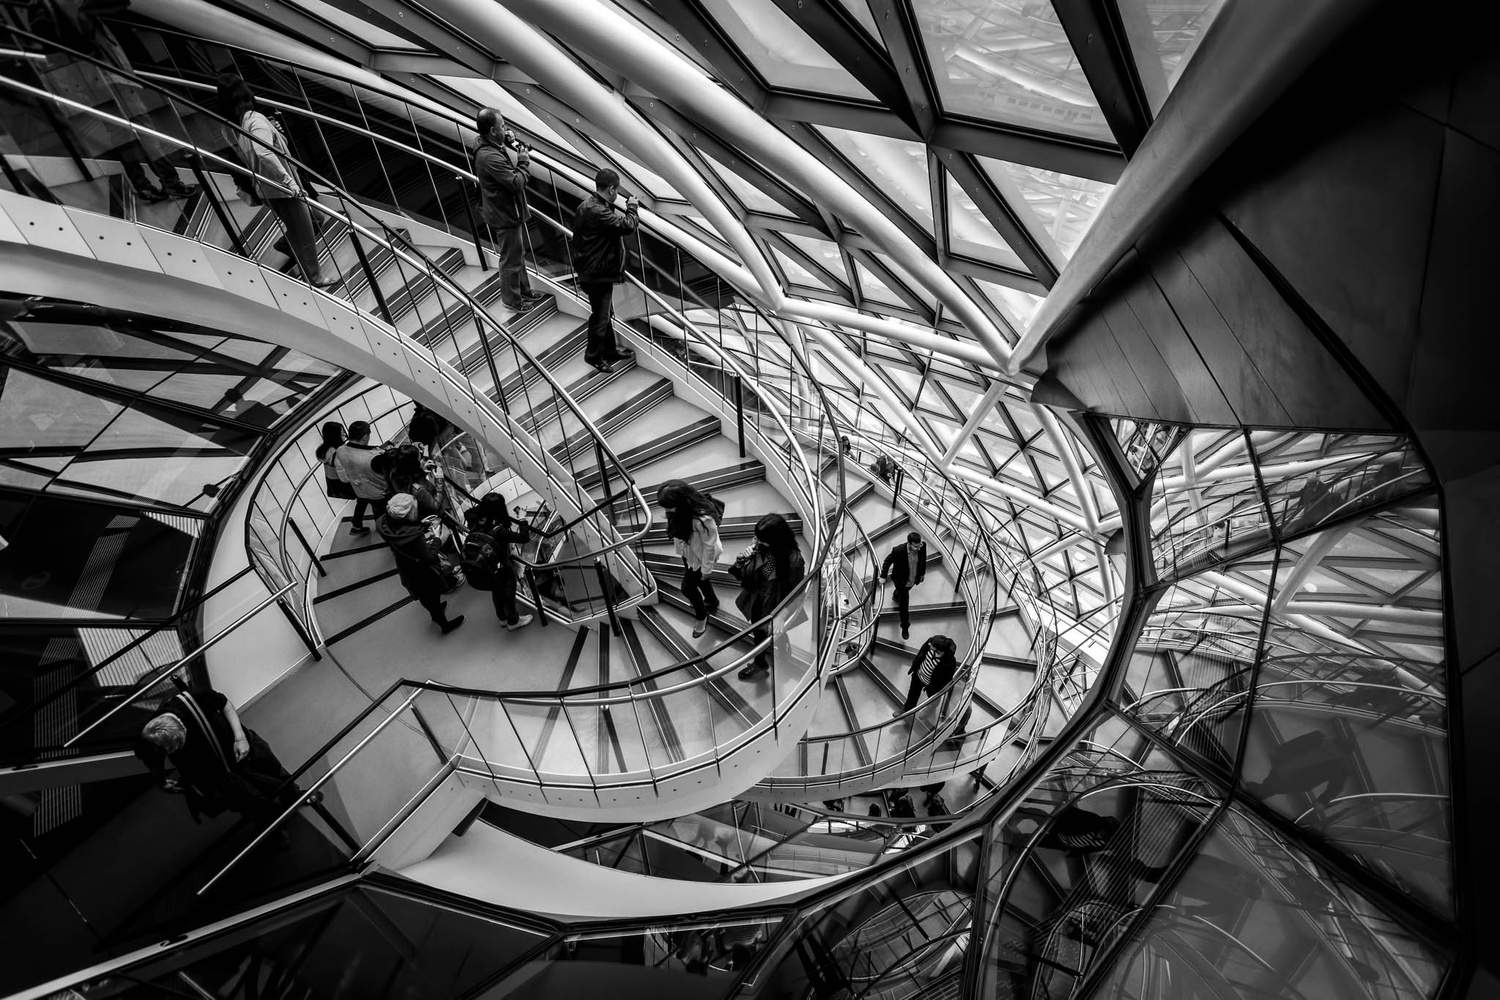 London City Hall by Lee Pelling